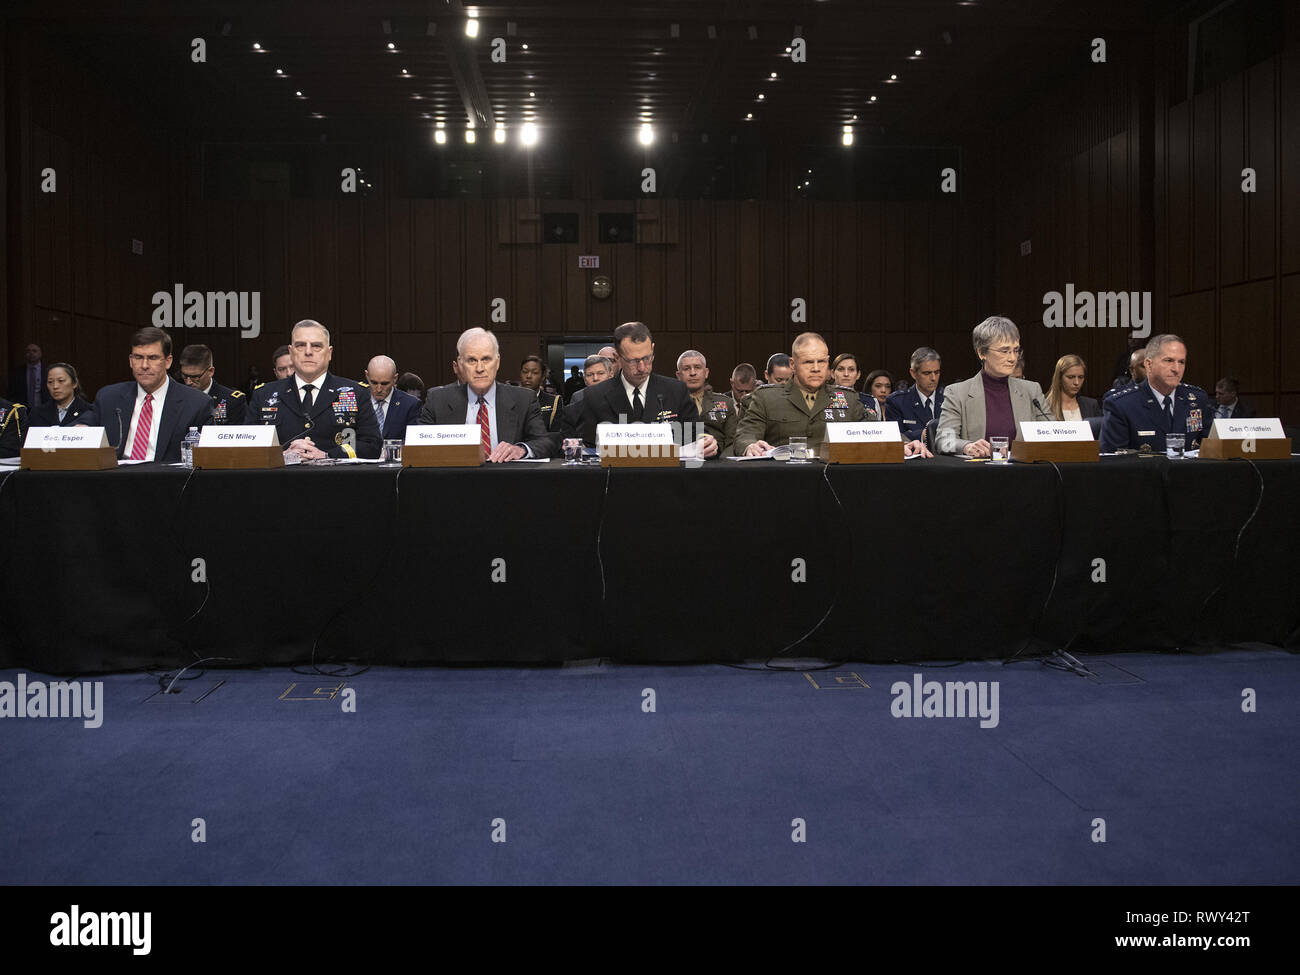 March 7, 2019 - Washington, District of Columbia, U.S. - From left to right: United States Secretary of the Army Dr. Mark T. Esper; US Army General Mark A. Milley, Chief of Staff of the Army; US Secretary of the Navy Richard V. Spencer; US Navy Admiral John M. Richardson, Chief of Naval Operations; US Marine Corps General Robert B. Neller, Commandant of the Marine Corps; US Secretary of the Air Force Heather Wilson; and US Air Force General David L. Goldfein, Chief of Staff of the Air Force testify before the US Senate Committee on Armed Services during a hearing on ''Chain of Command's Acco Stock Photo